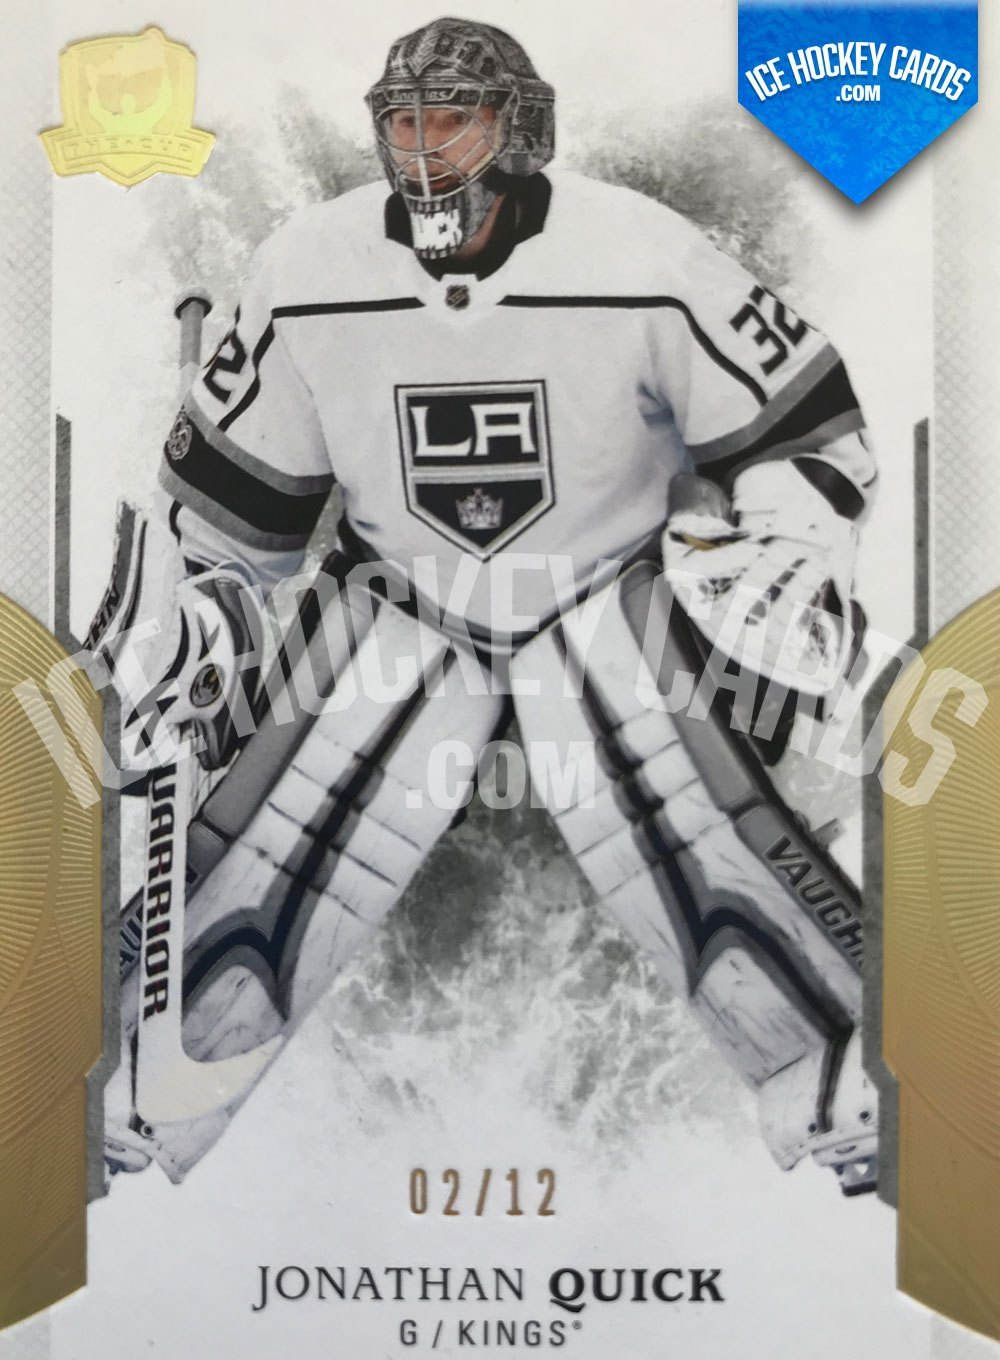 Upper Deck - The Cup 17-18 - Jonathan Quick Gold Base Card 2 of 10 RARE